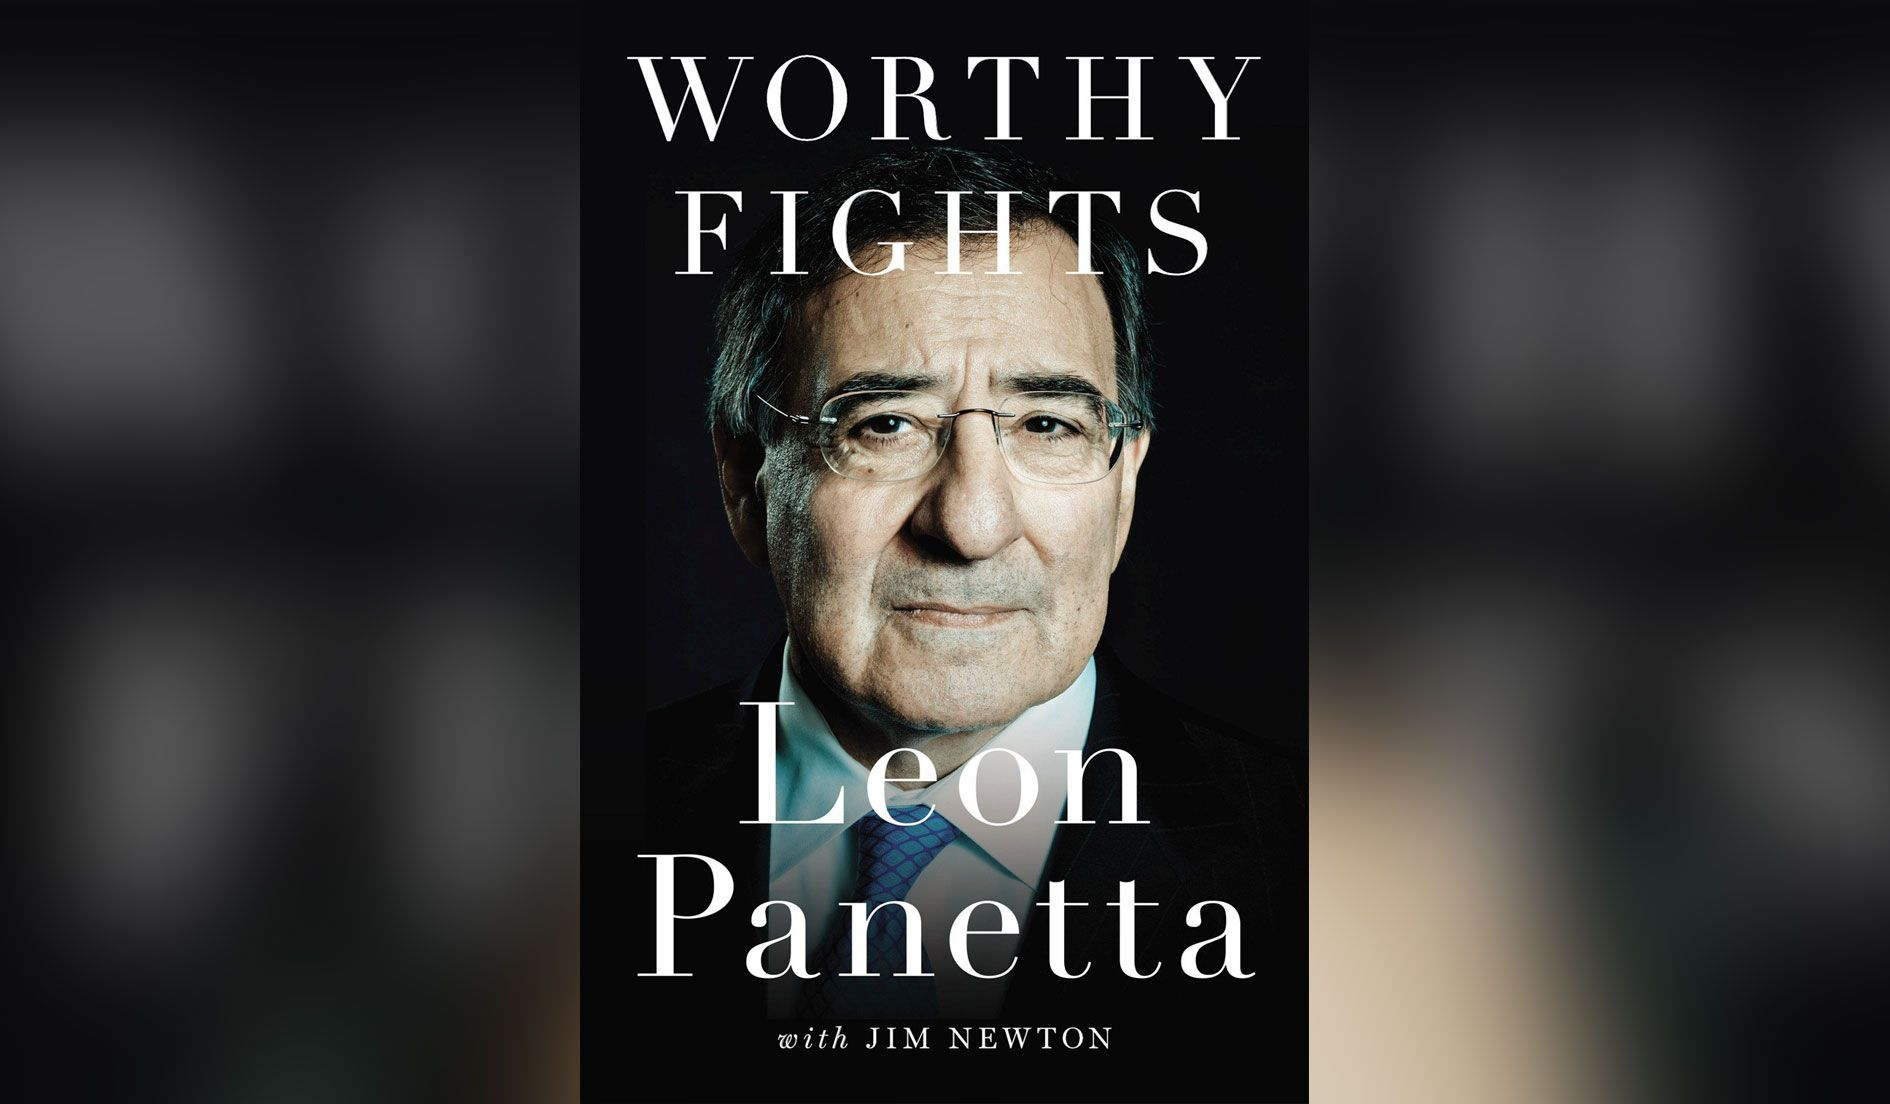 """Worthy Fights"" by Leon Panetta"